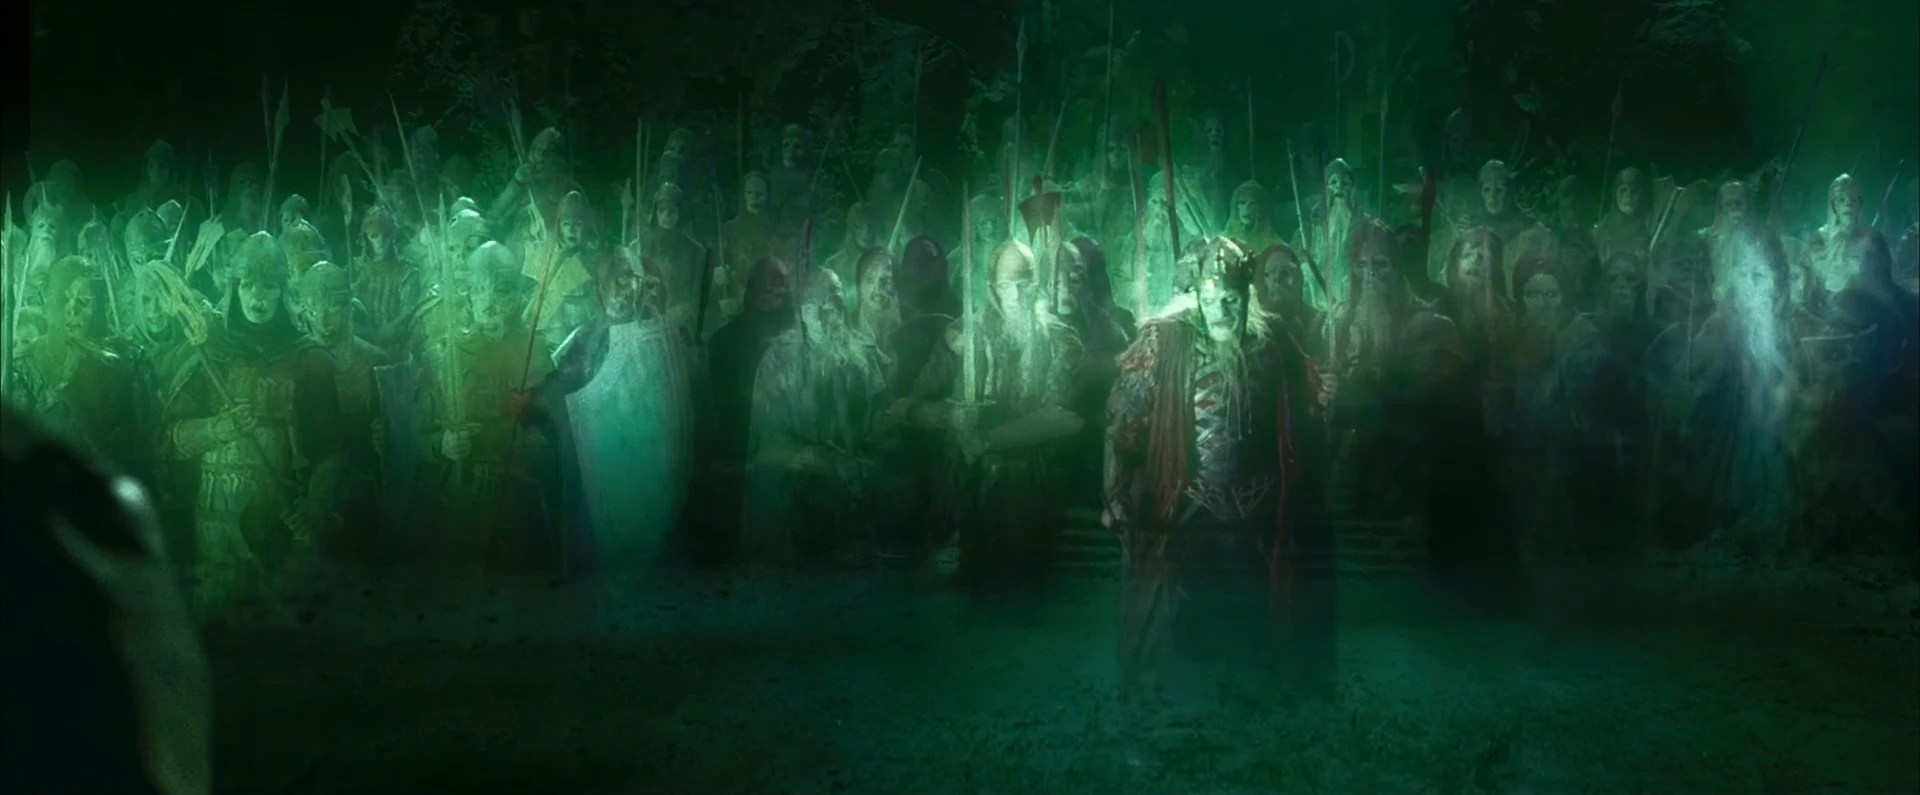 https://i2.wp.com/images2.wikia.nocookie.net/__cb20130319231540/lotr/images/a/a2/Army_of_the_dead.jpg